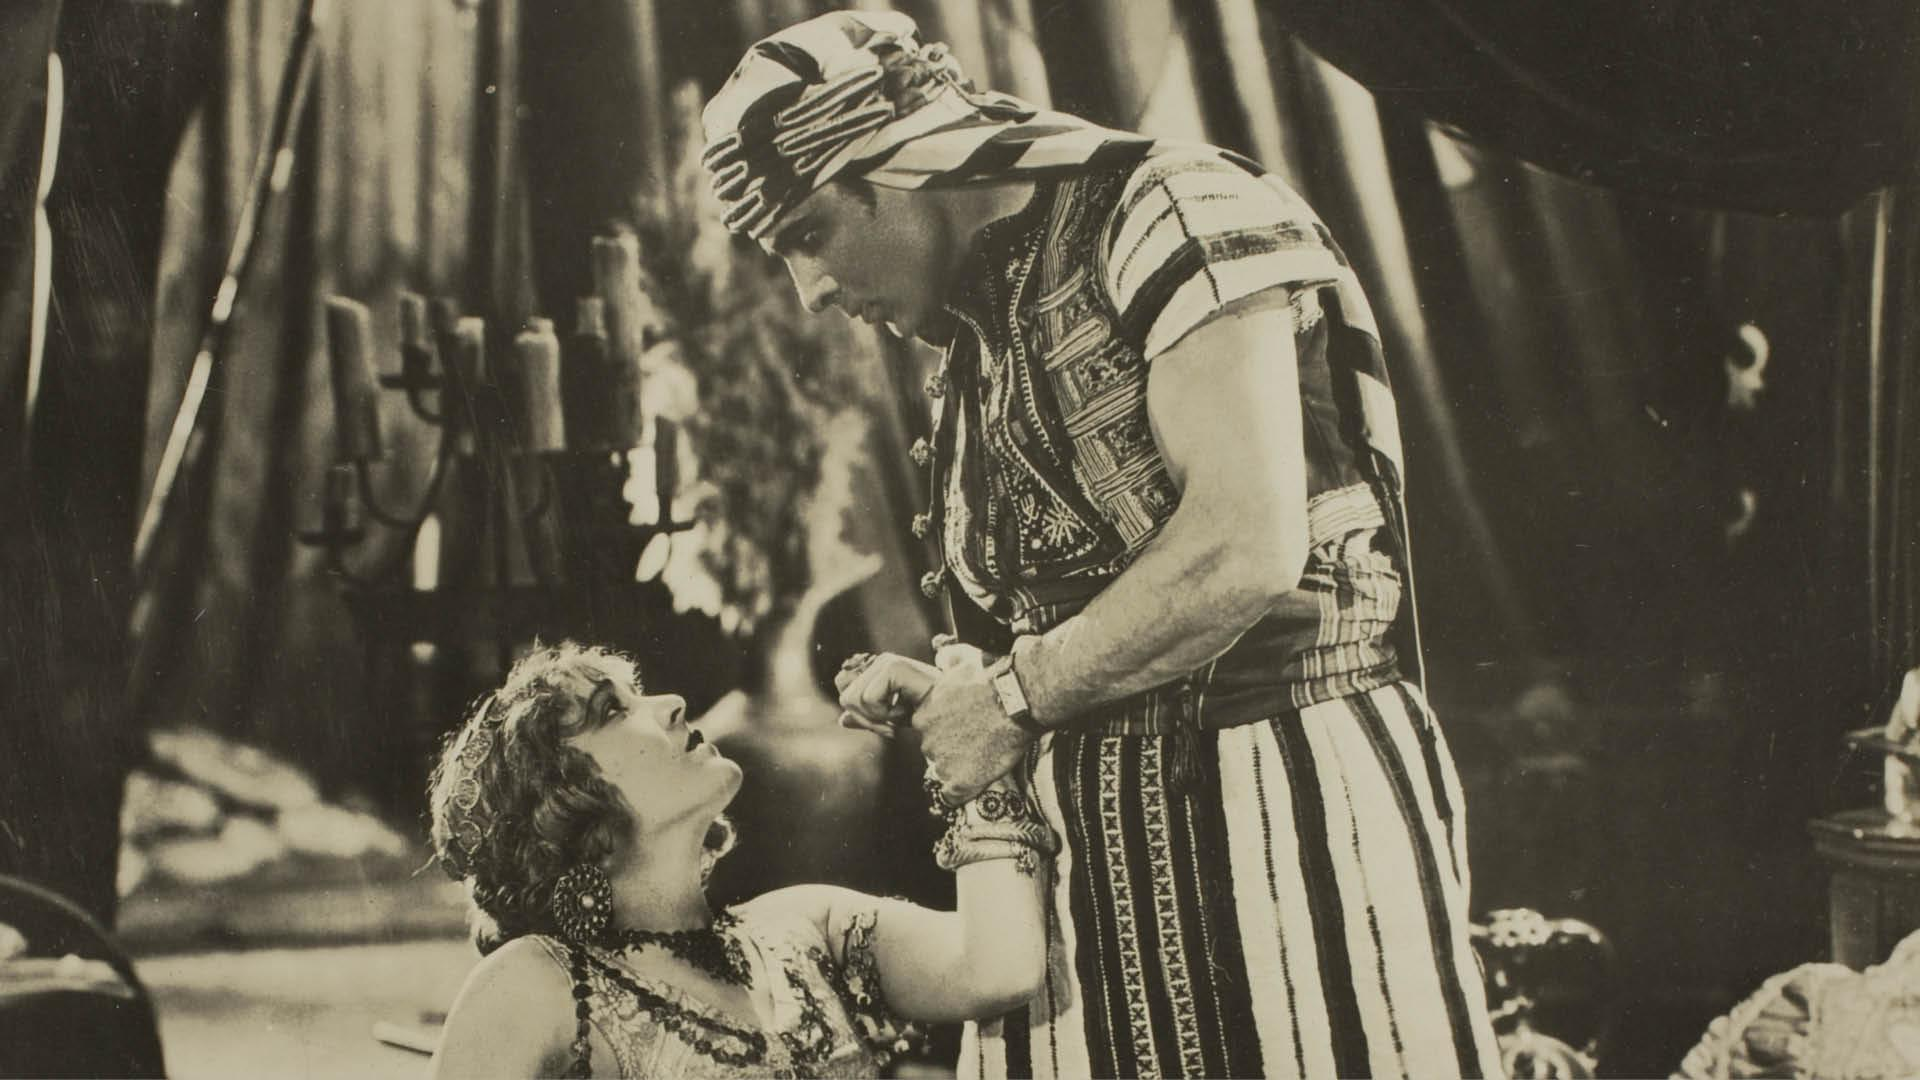 The Son of the Sheikh Rudolph Valentino